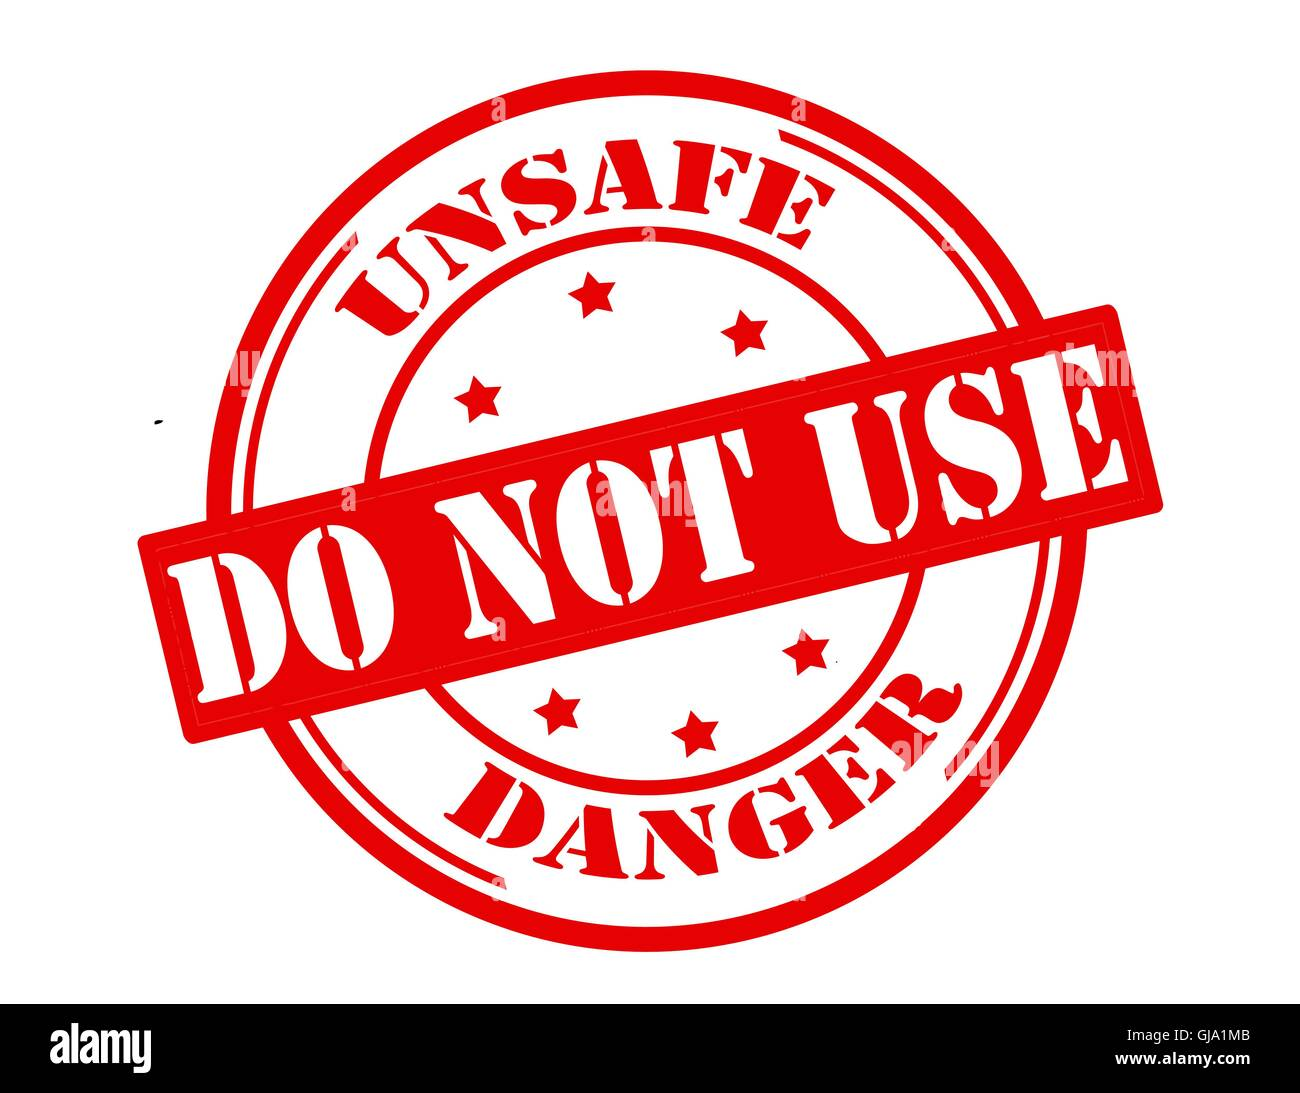 Unsafe do not use - Stock Image